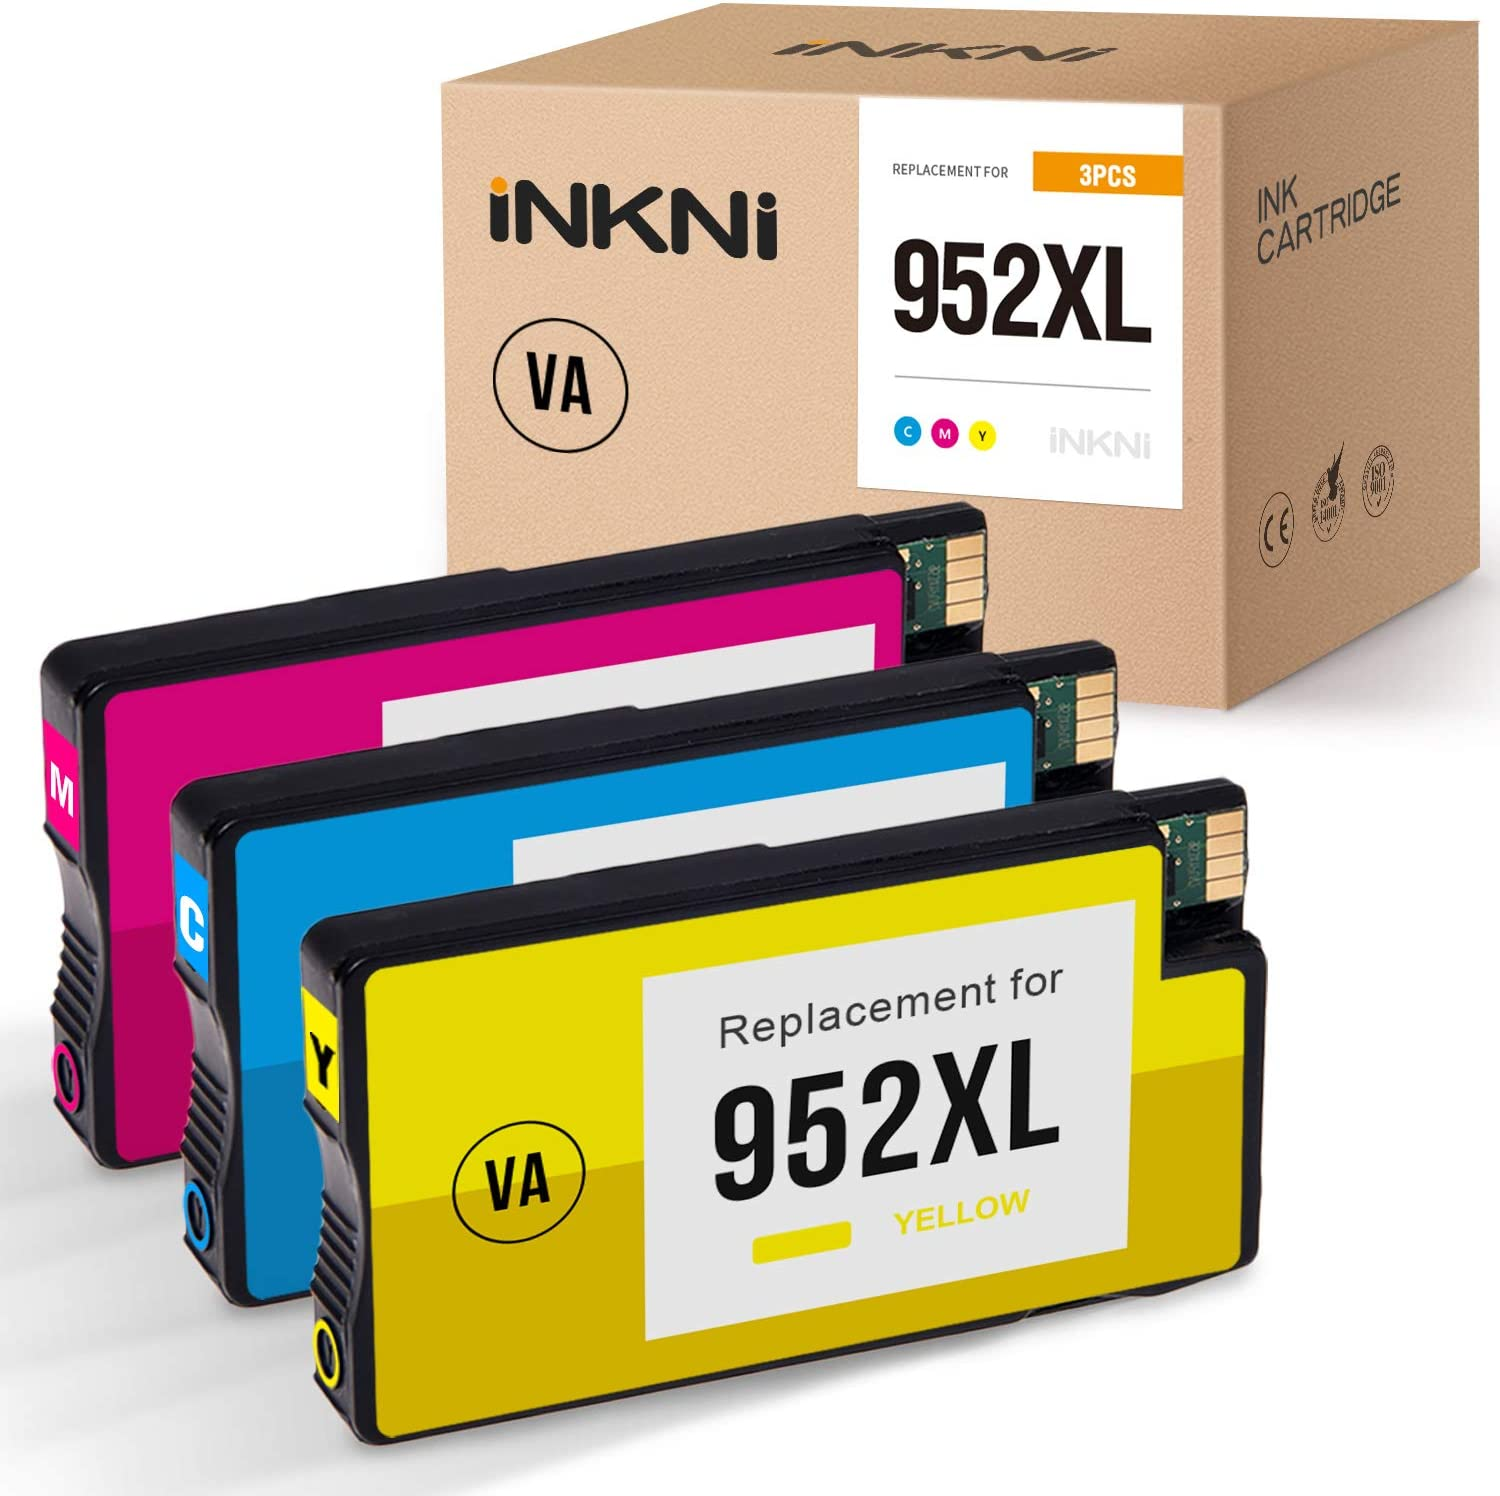 INKNI Remanufactured Ink Cartridge Replacement for HP 952XL 952 XL 952 High Yield use with OfficeJet Pro 8710 8720 8702 7740 8715 8740 8210 7720 8730 8725 8216 (1 Cyan, 1 Magenta, 1 Yellow, 3 Pack)